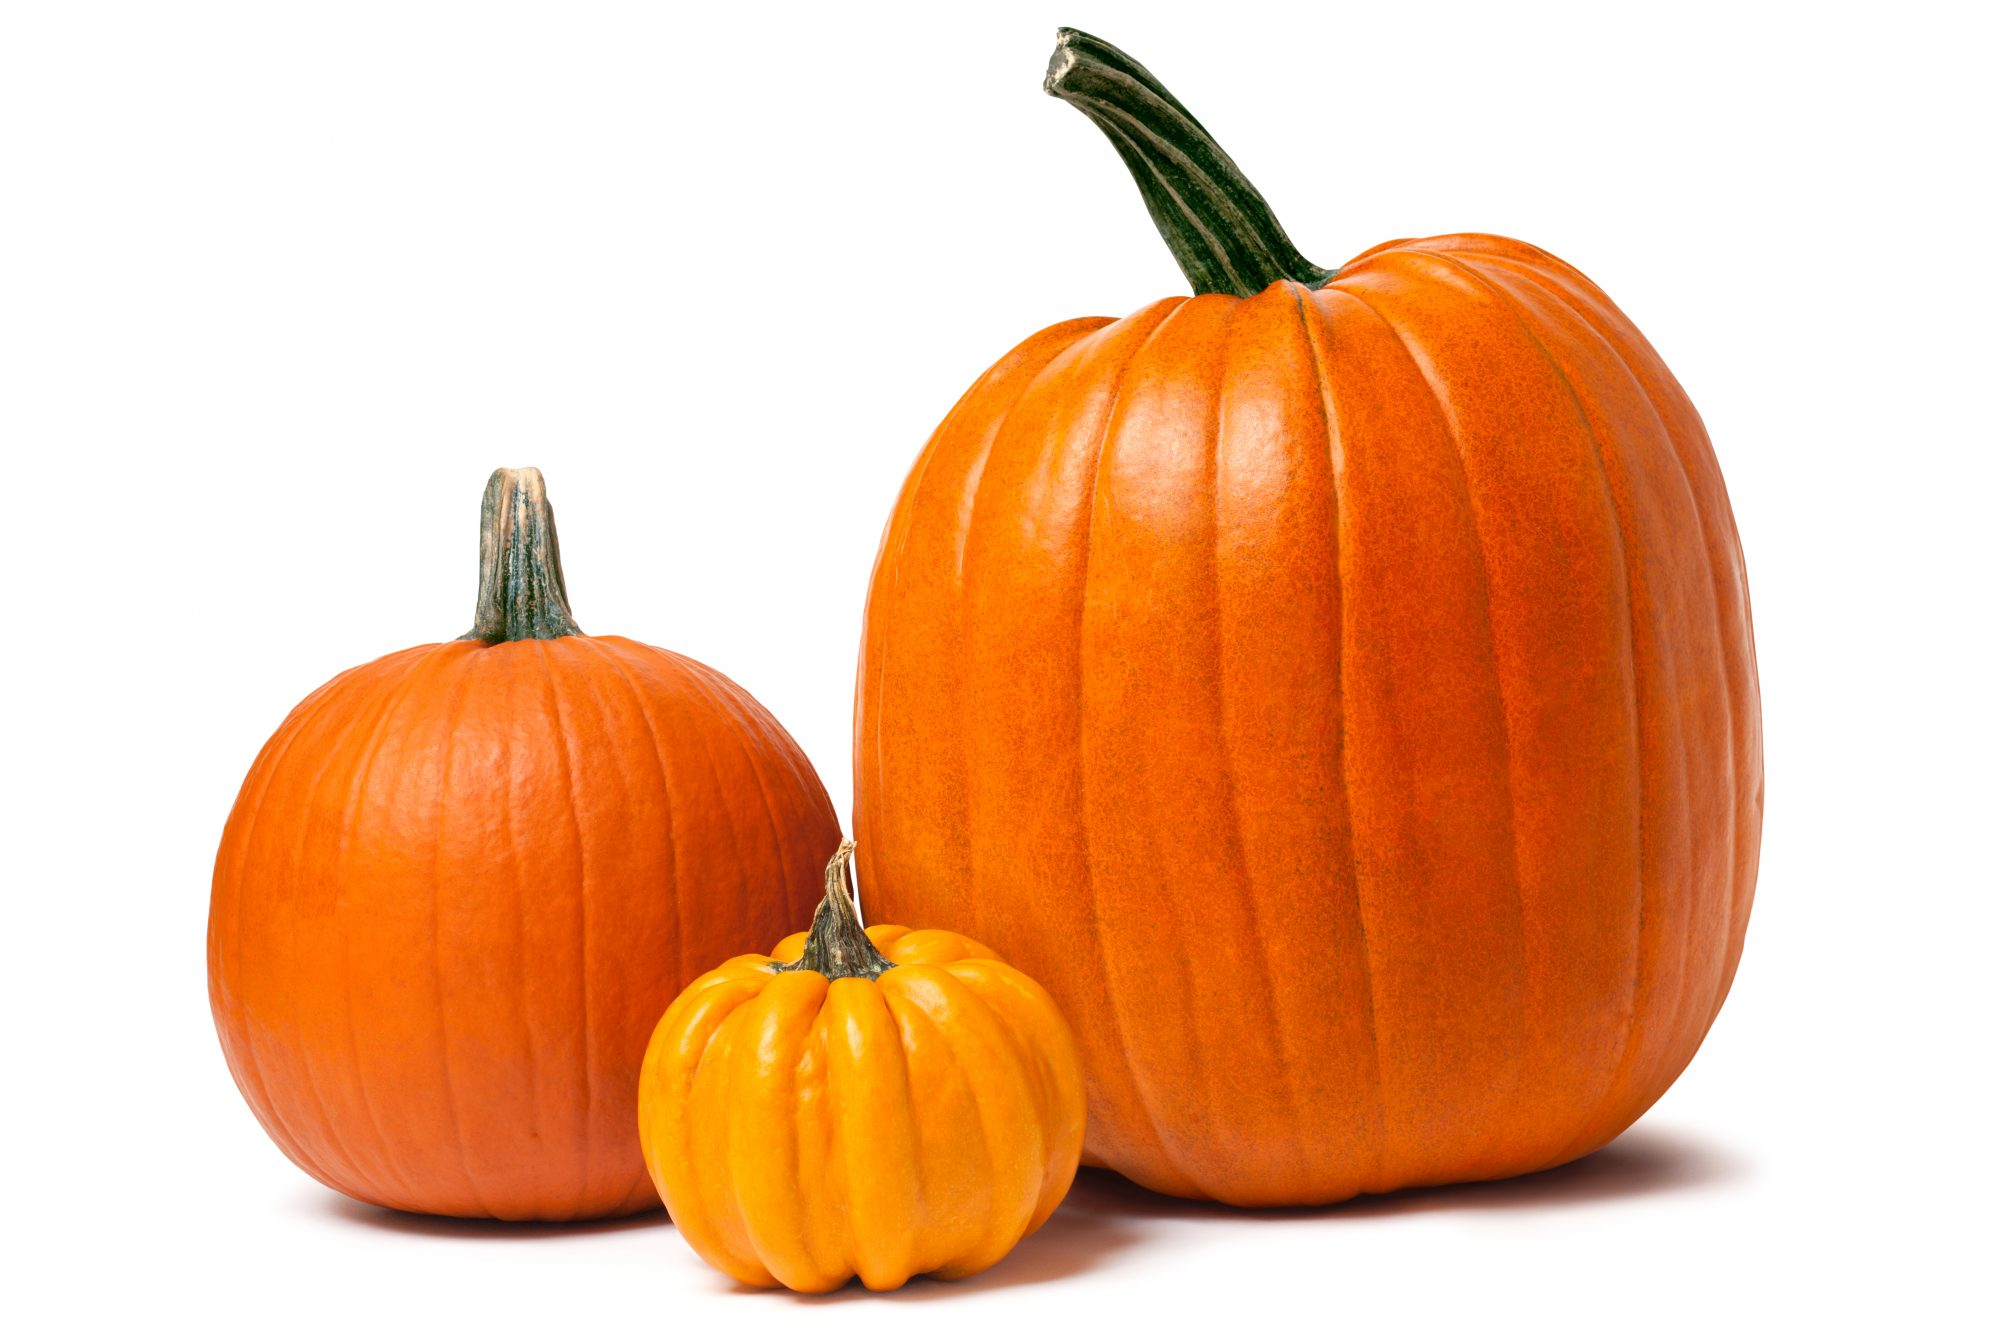 Three differently sized pumpkins.